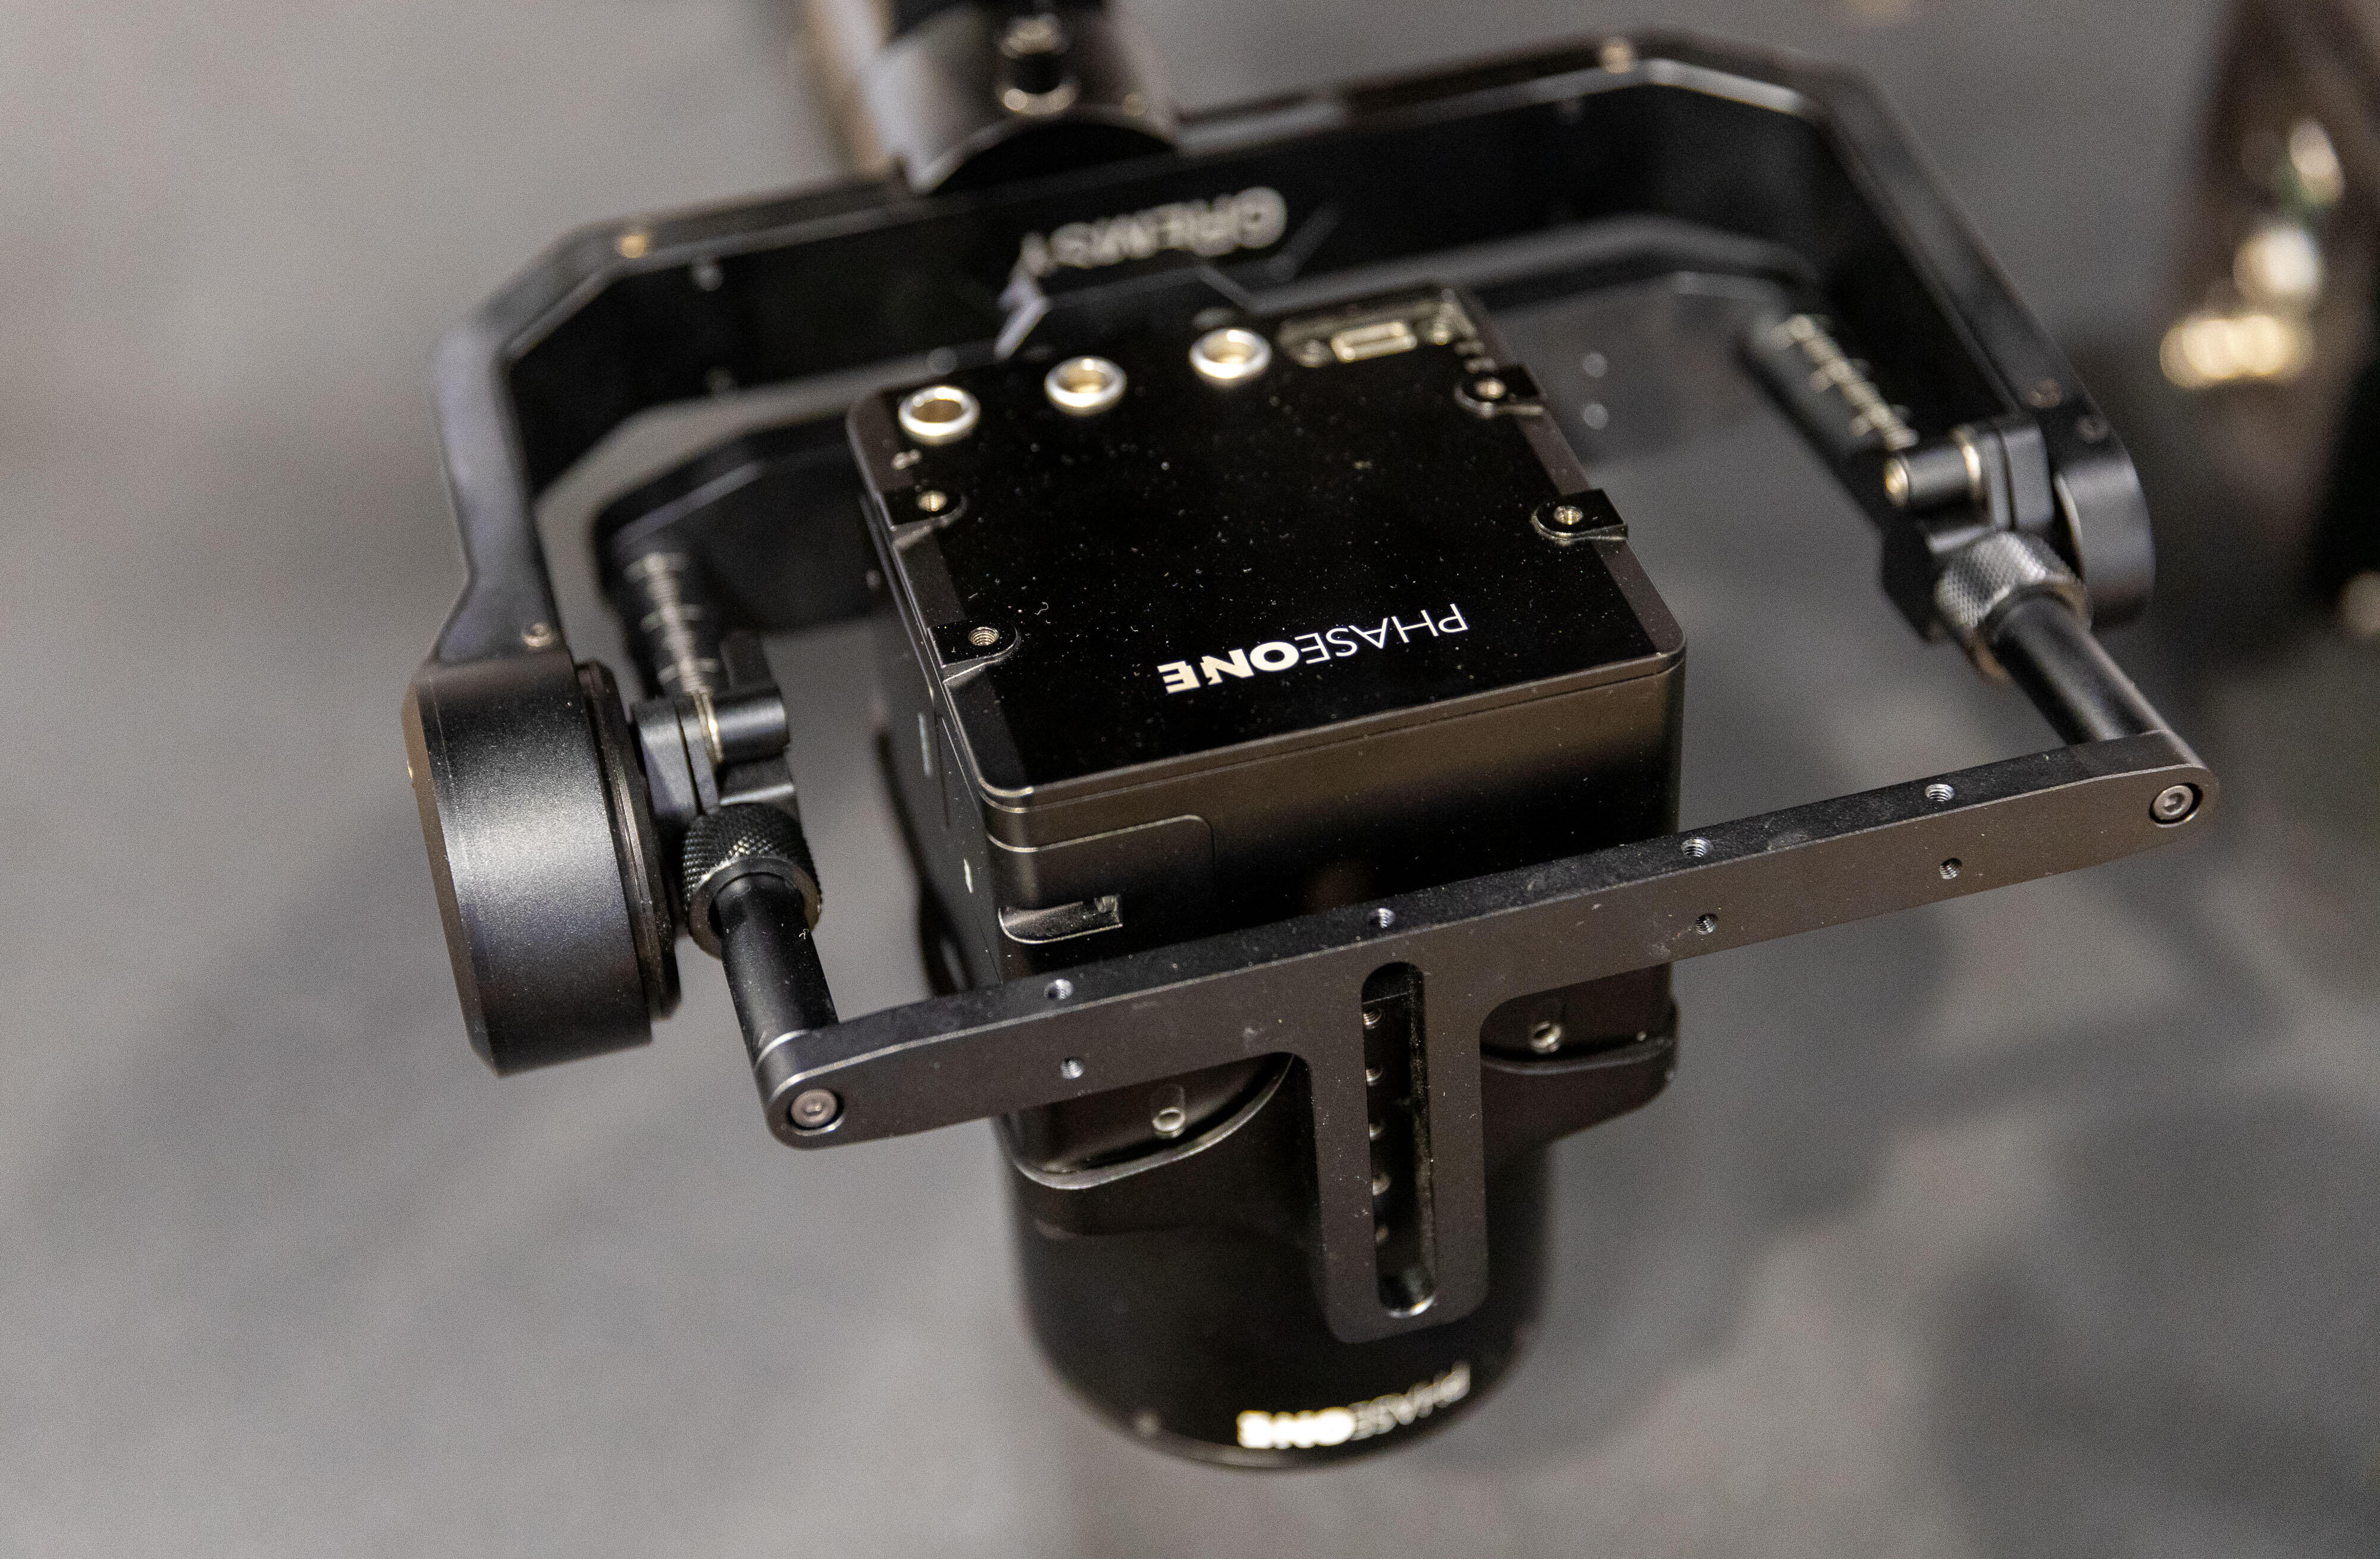 Drone-mounted Phase One industrial camera